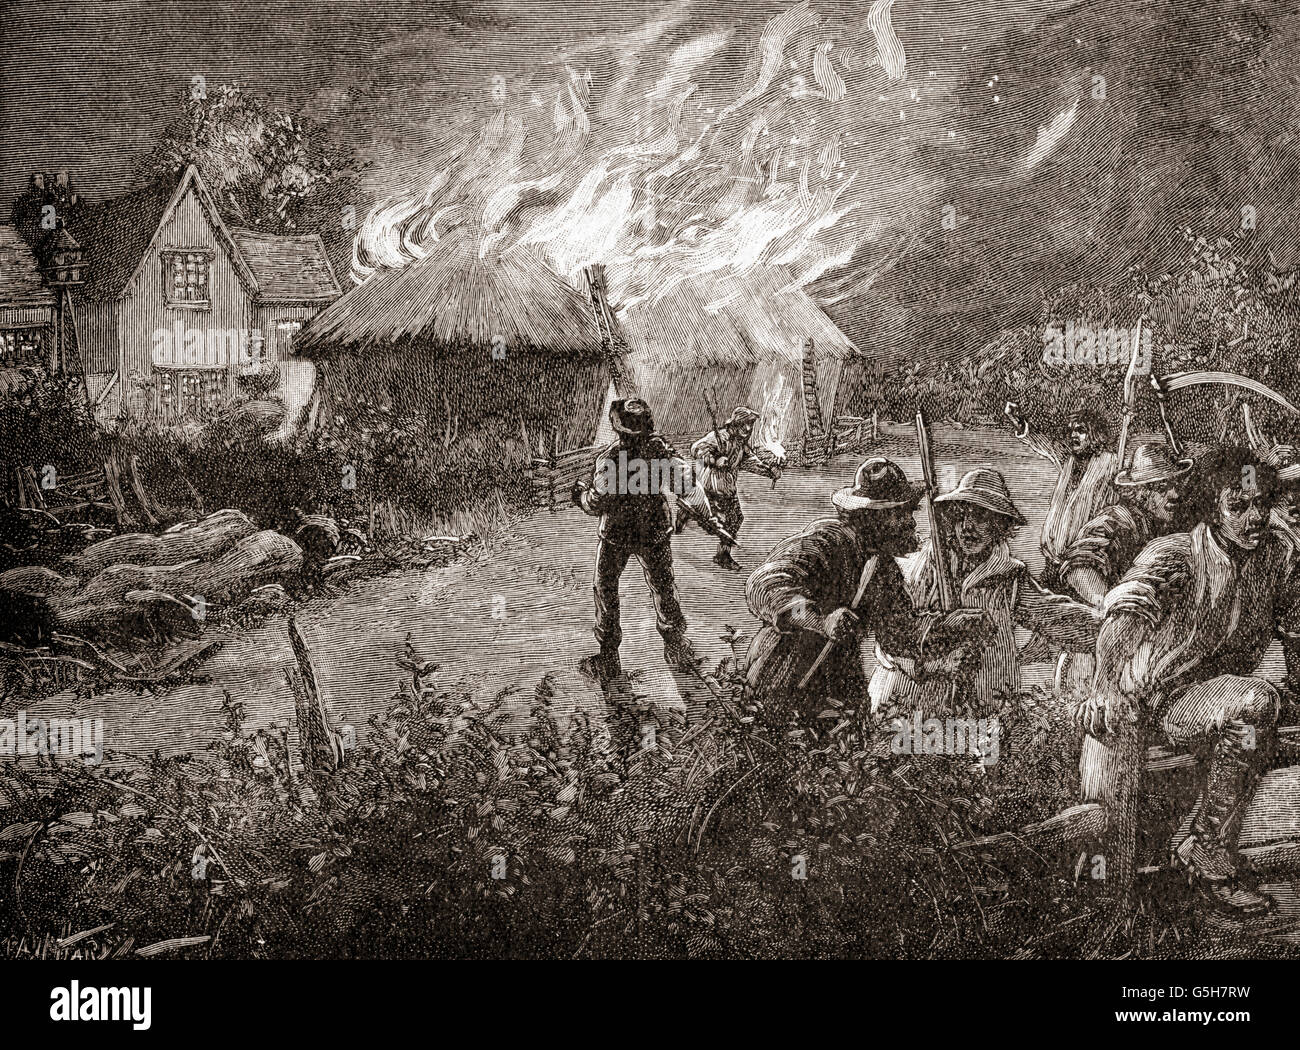 A mob in Kent, England burning a hayrick on a farm during The Swing Riots of 1830. - Stock Image